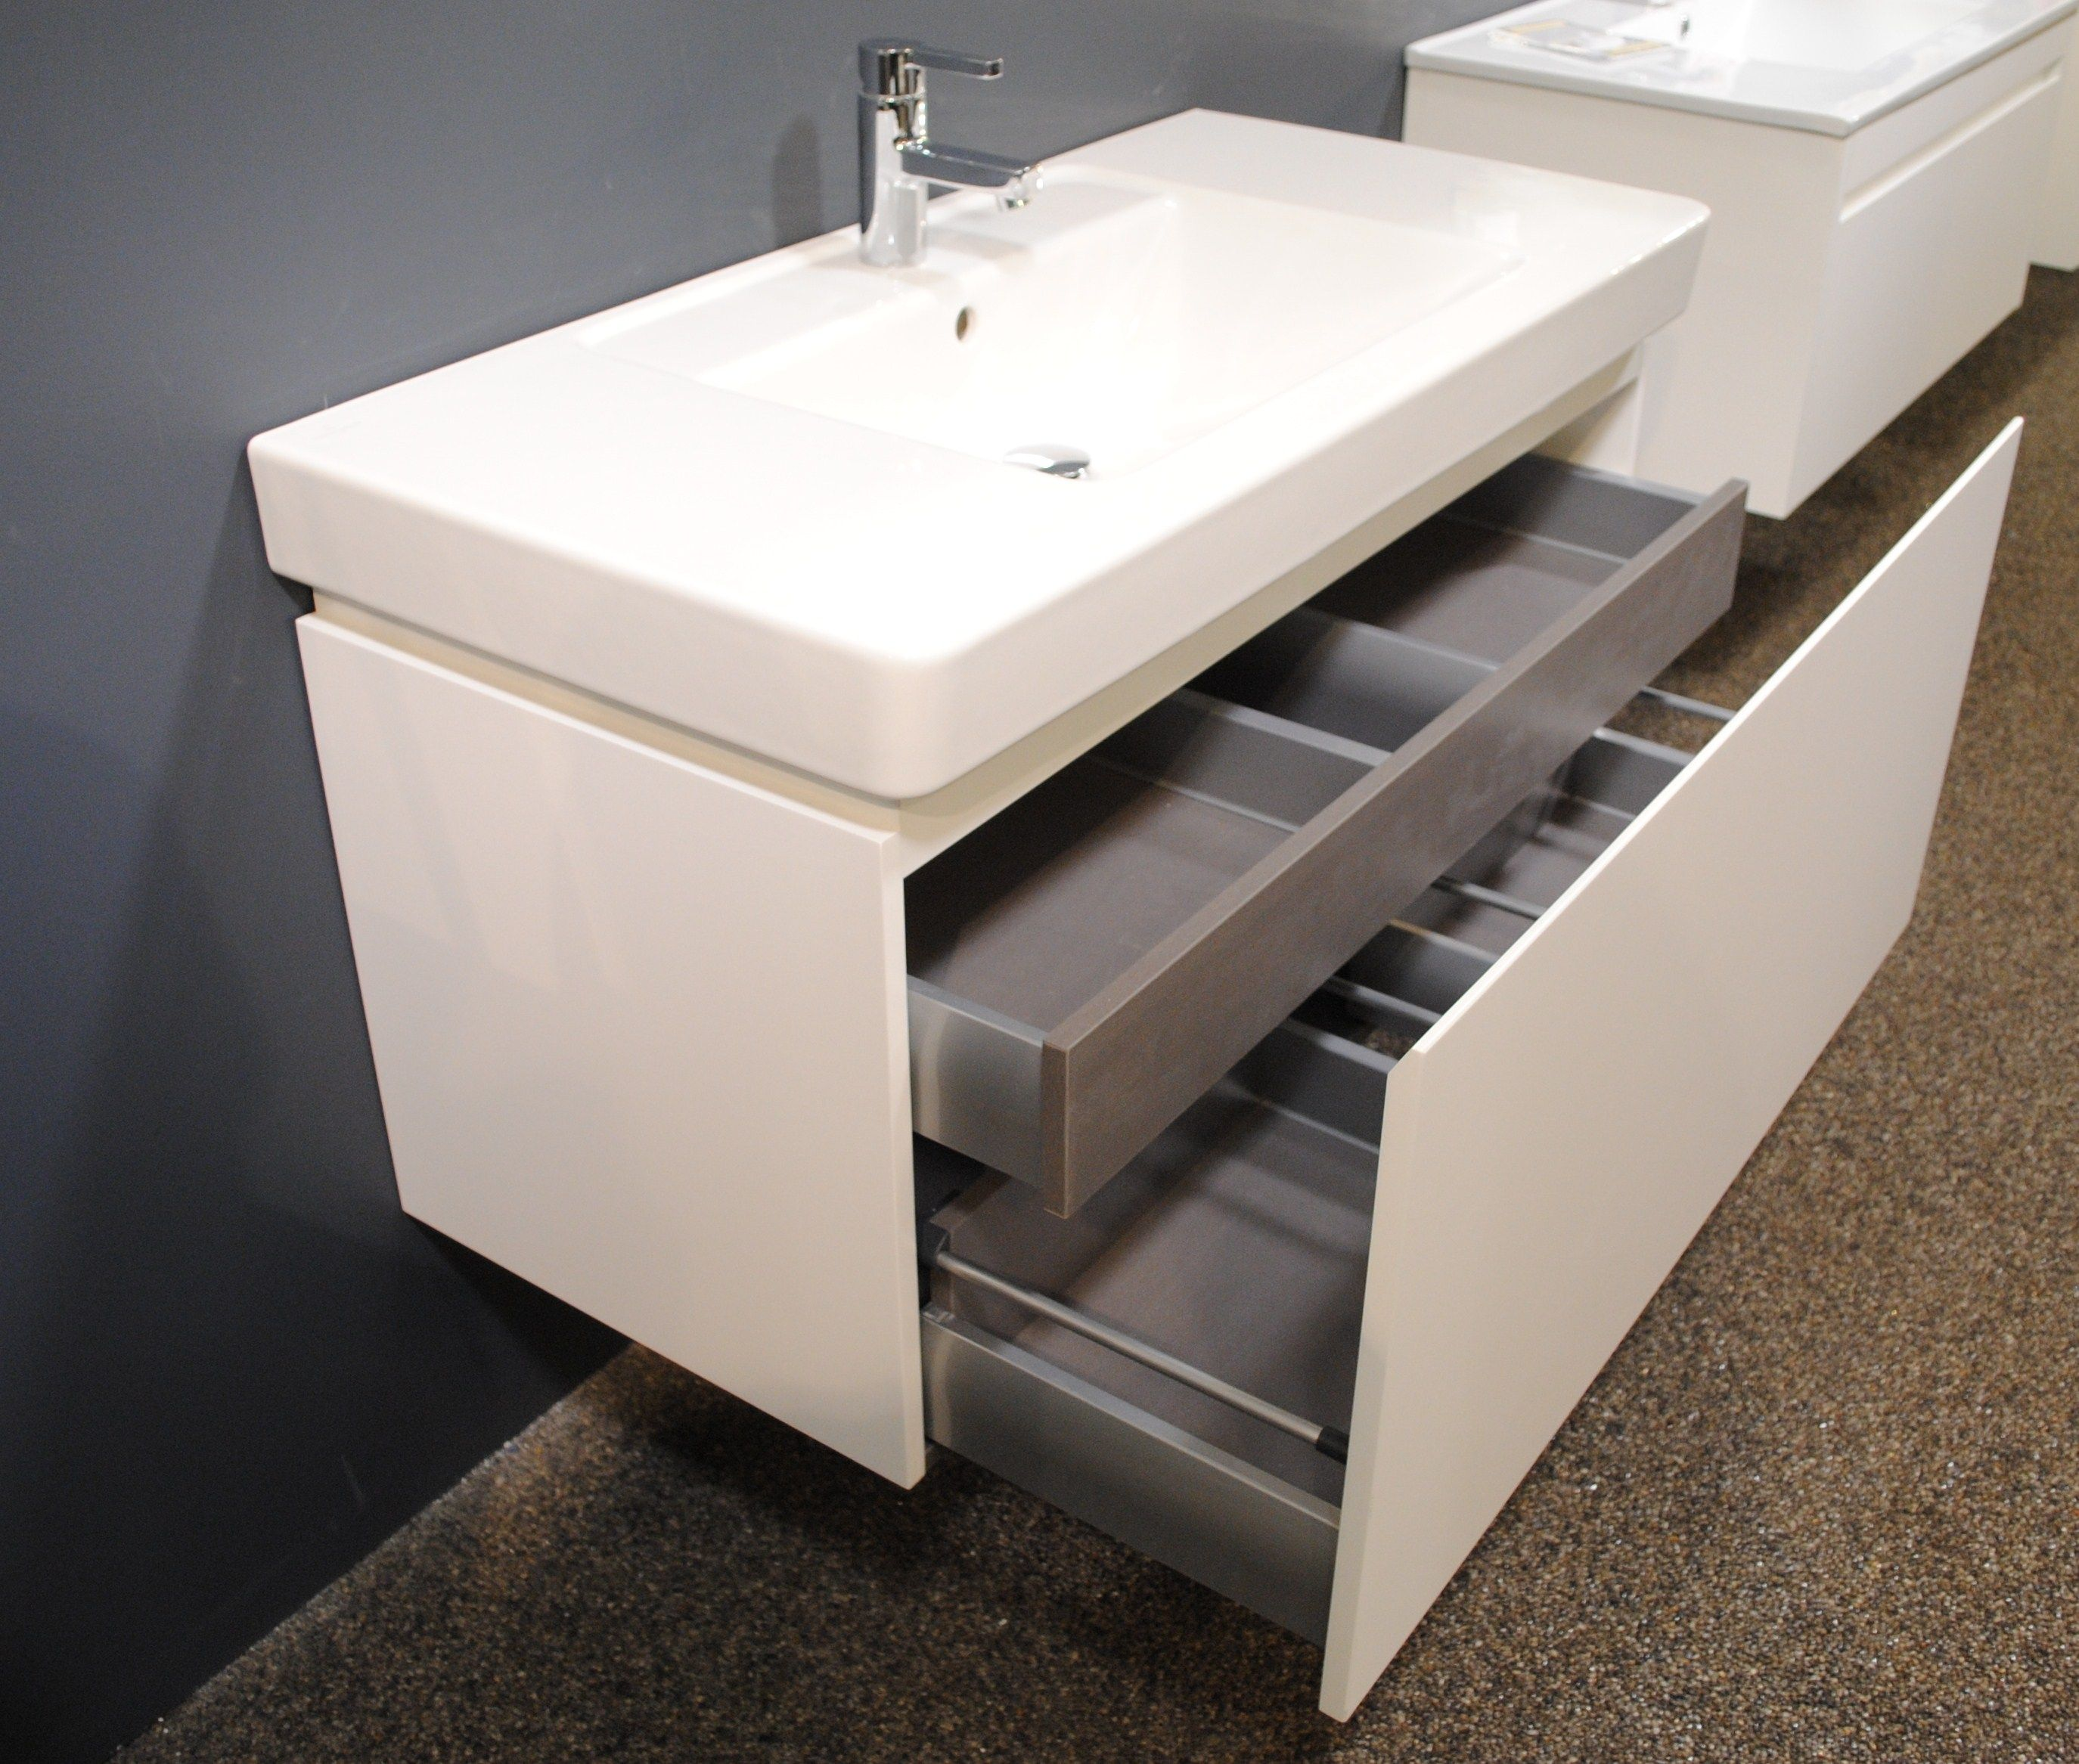 sink htsrec size with photos elegant for looking vanity vanities and sinks of small full bathroom com space lovely